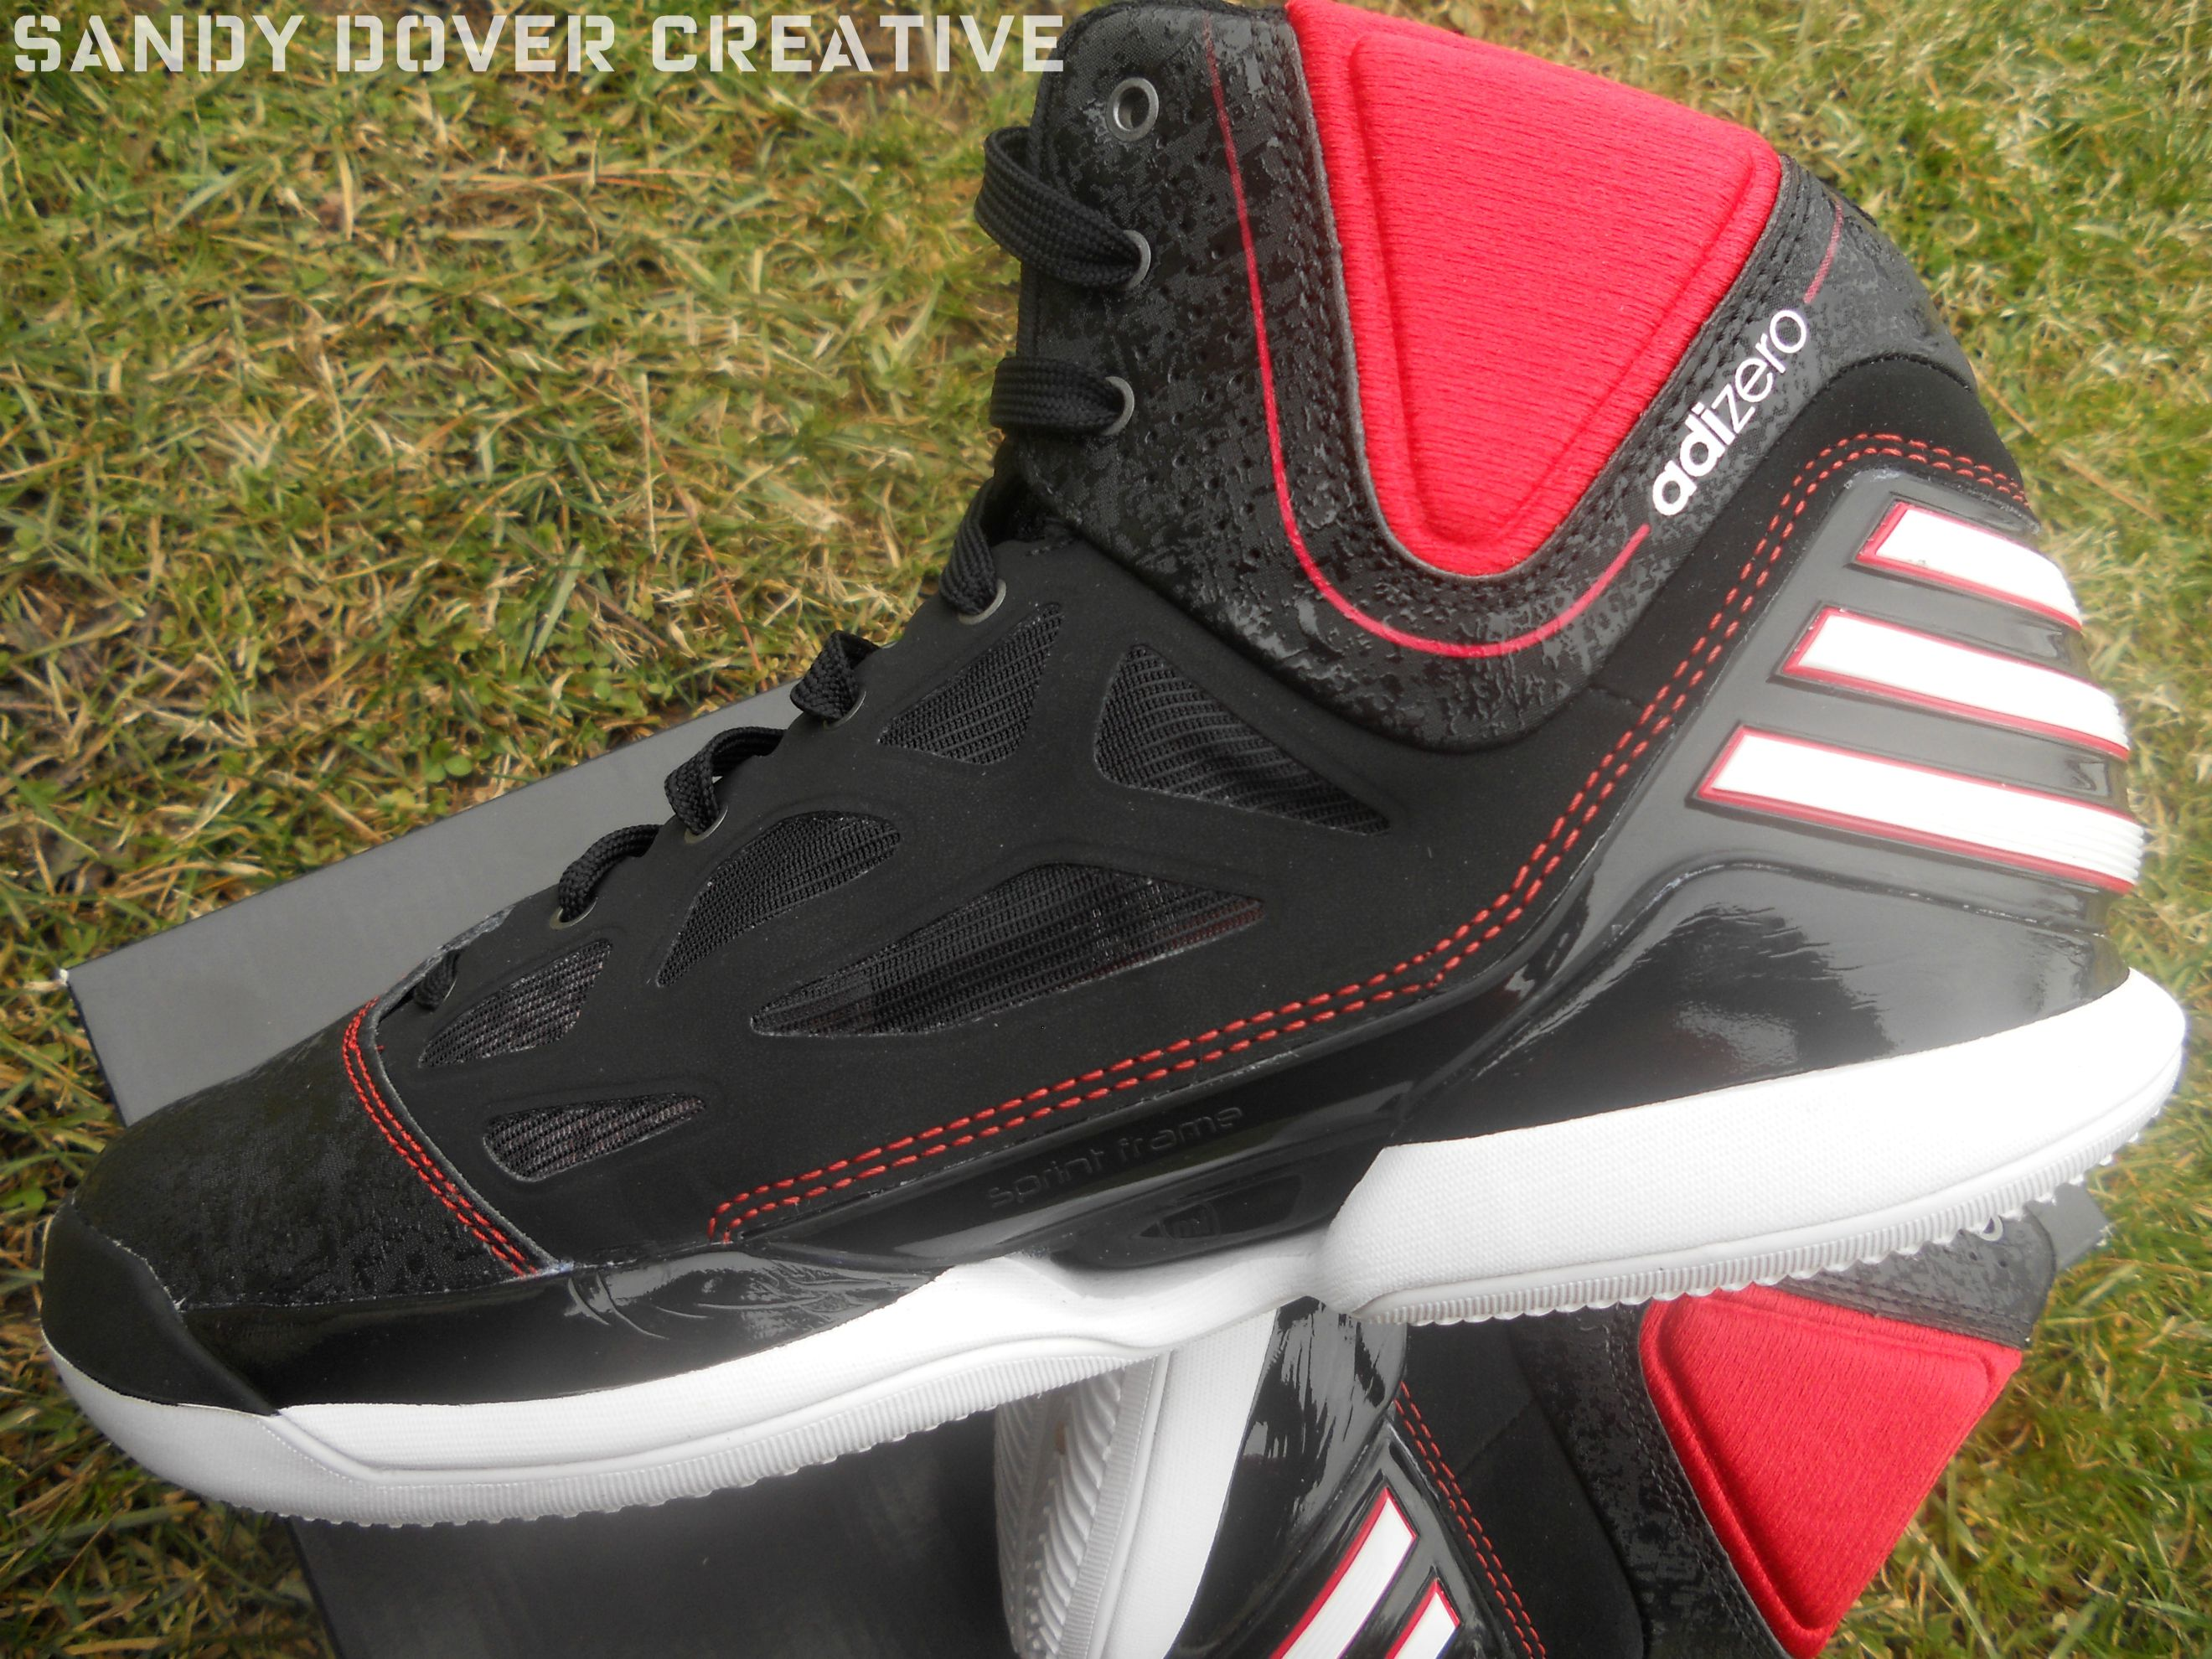 low priced 714dd af7a6 The adidas adiZero Rose 2.5 by Sandy Dover Creative httpwww.facebook